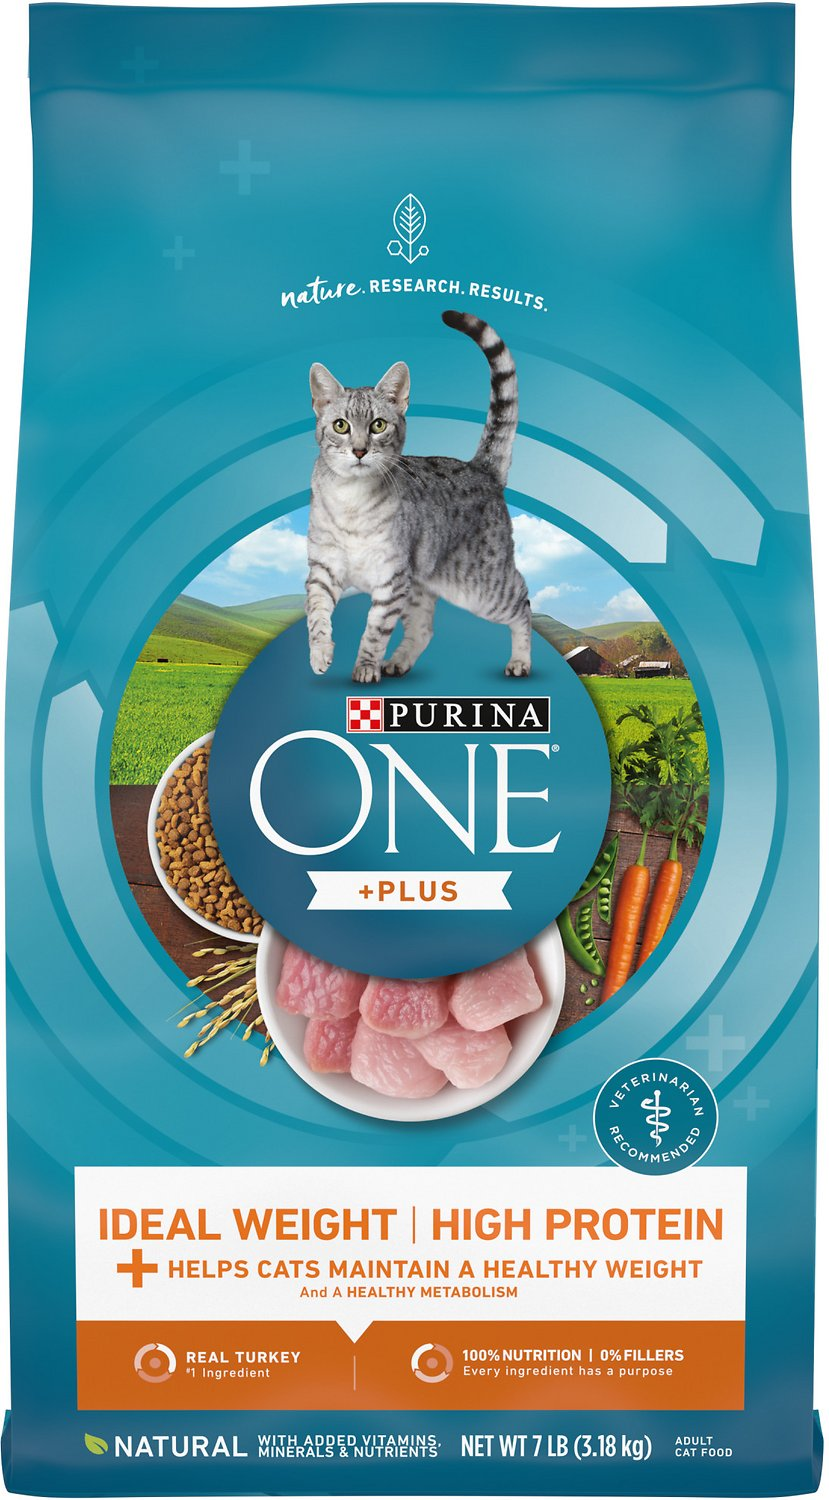 Purina One Healthy Metabolism Adult Premium Dry Cat Food